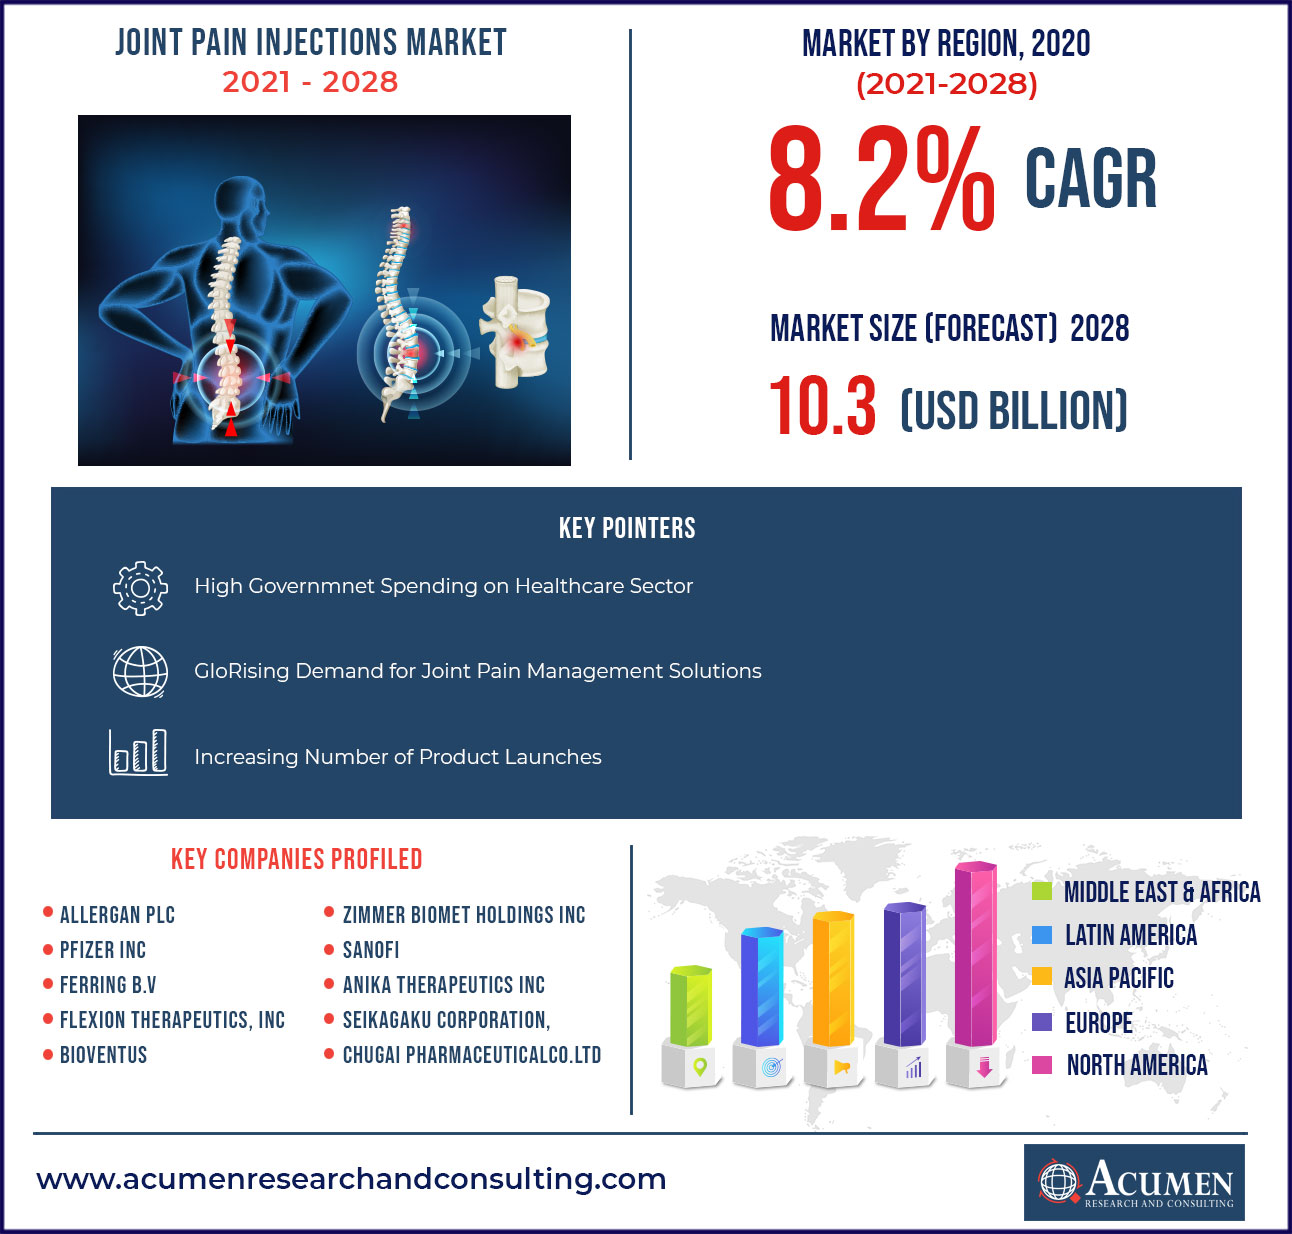 Joint Pain Injections Market Valuation - CAGR of around 8.2% 2021 to 2028